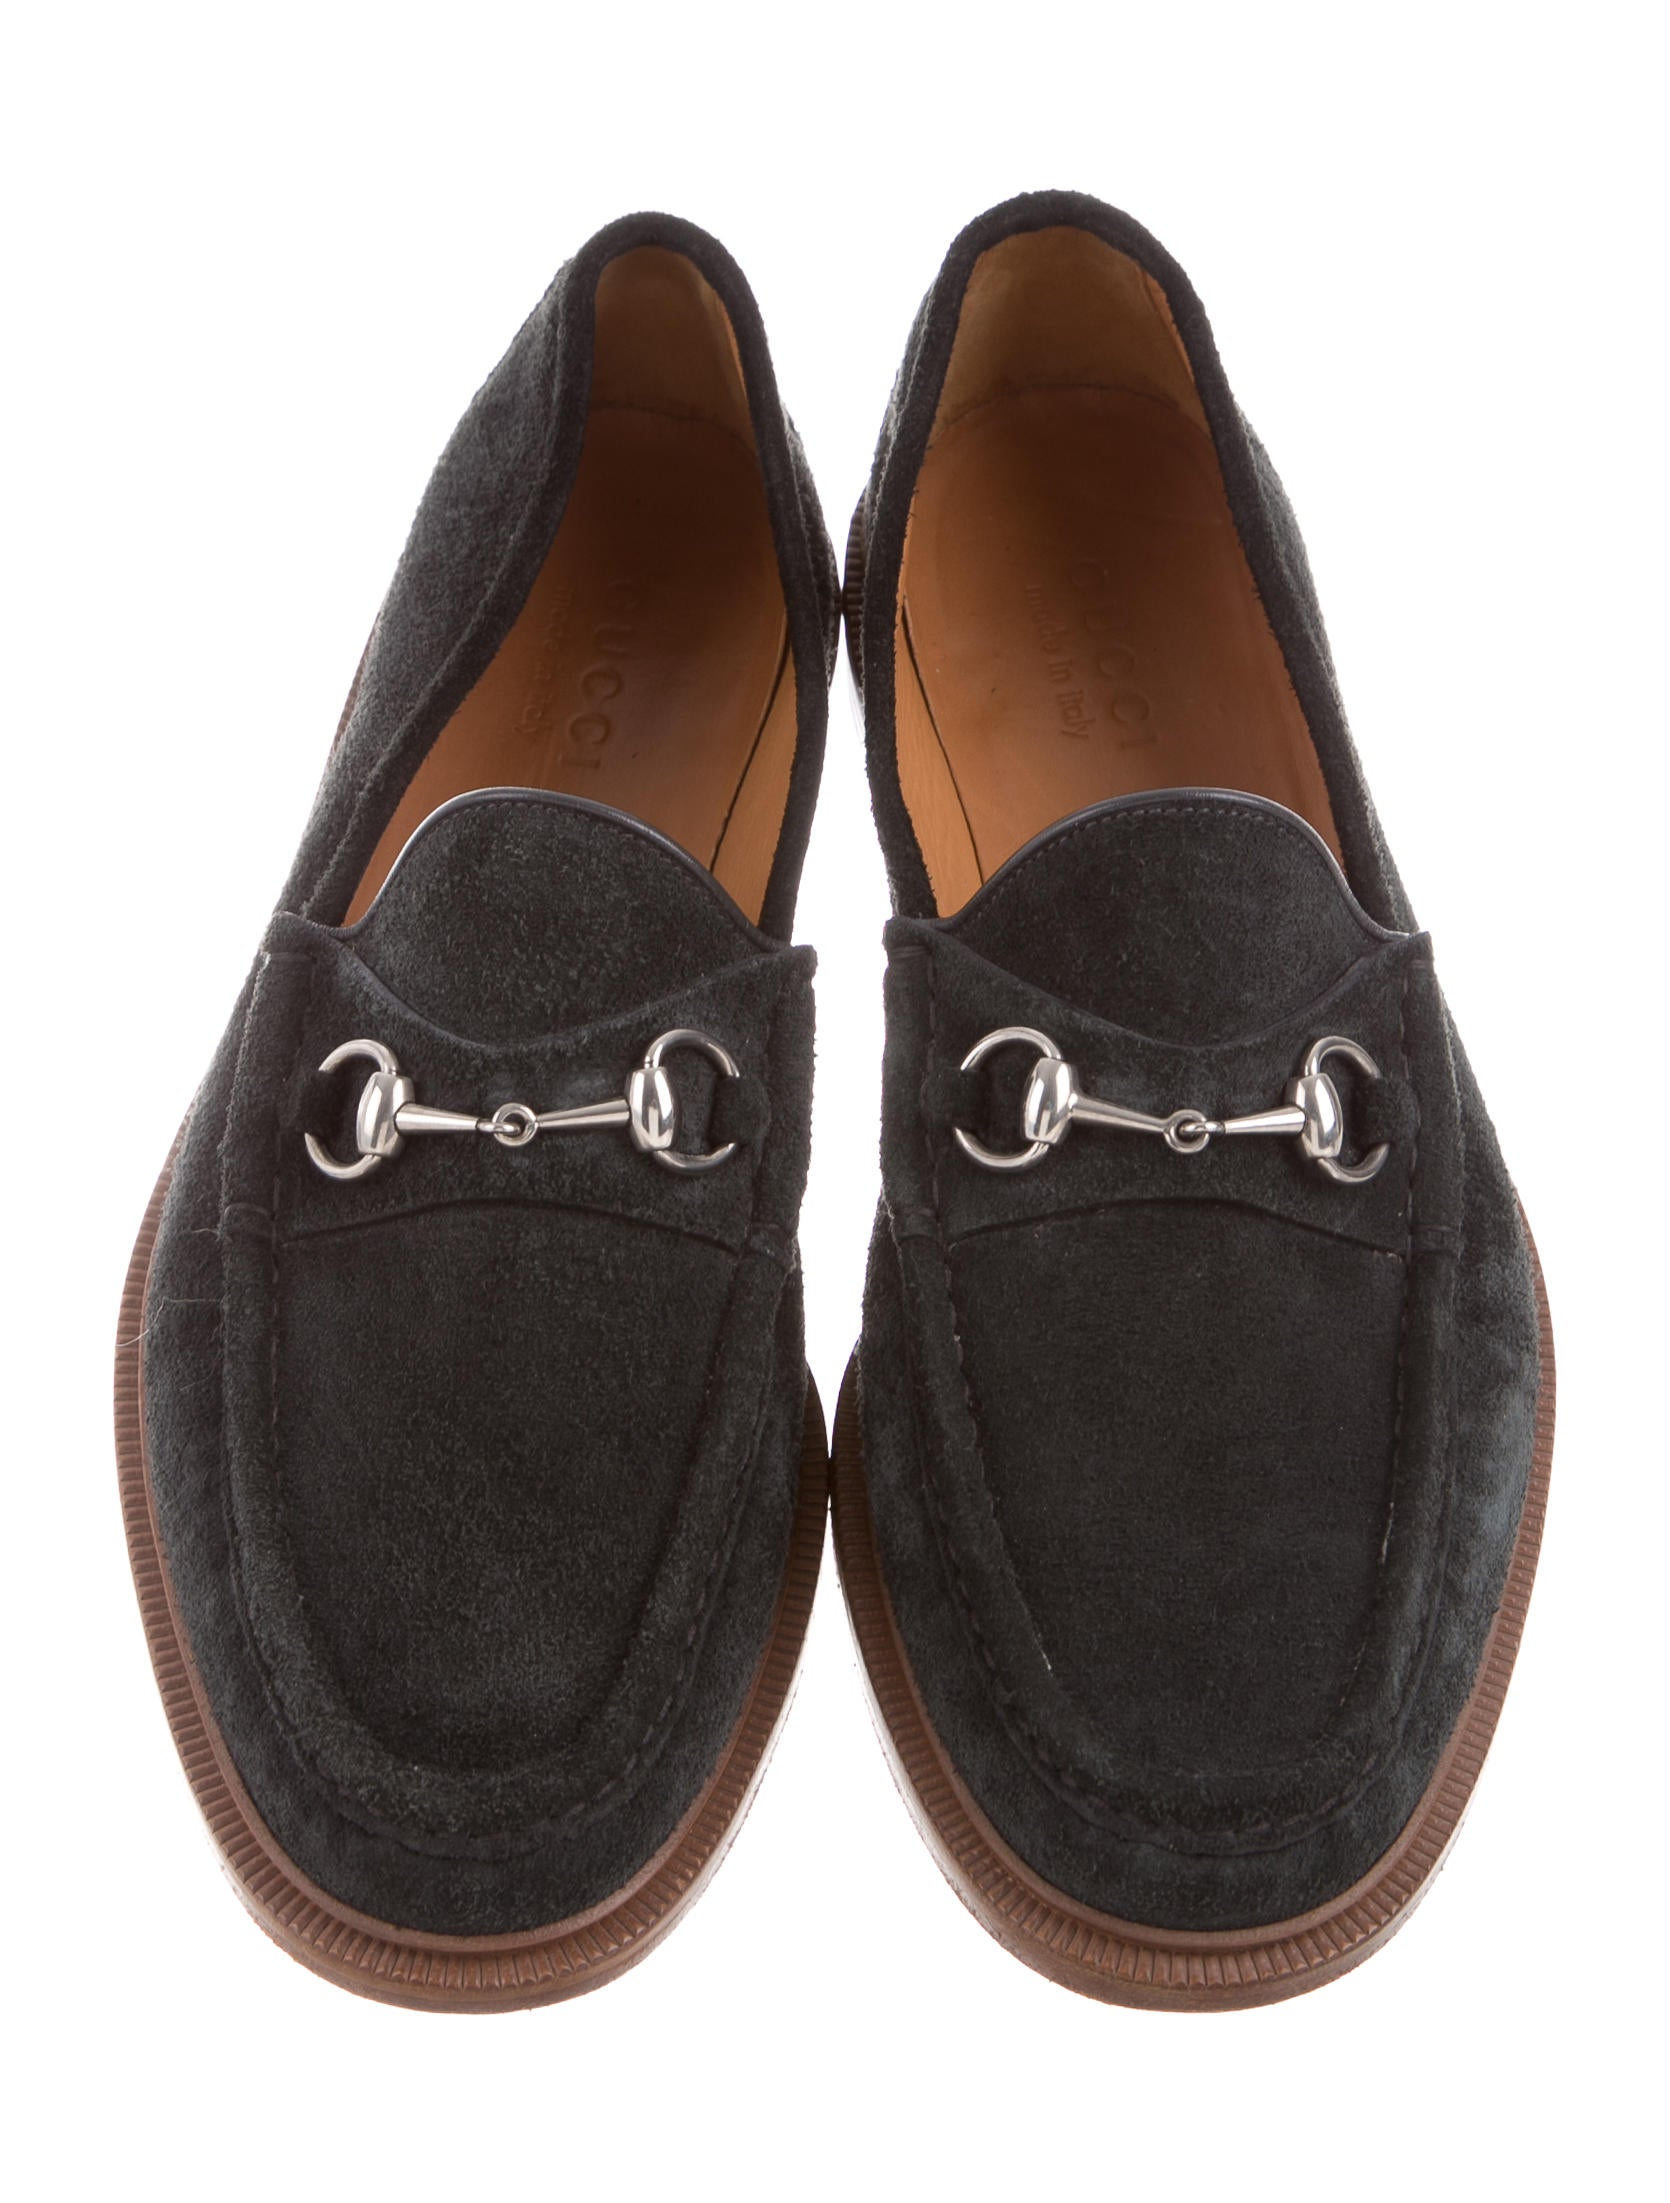 Gucci Suede Horsebit Loafers Shoes Guc153570 The